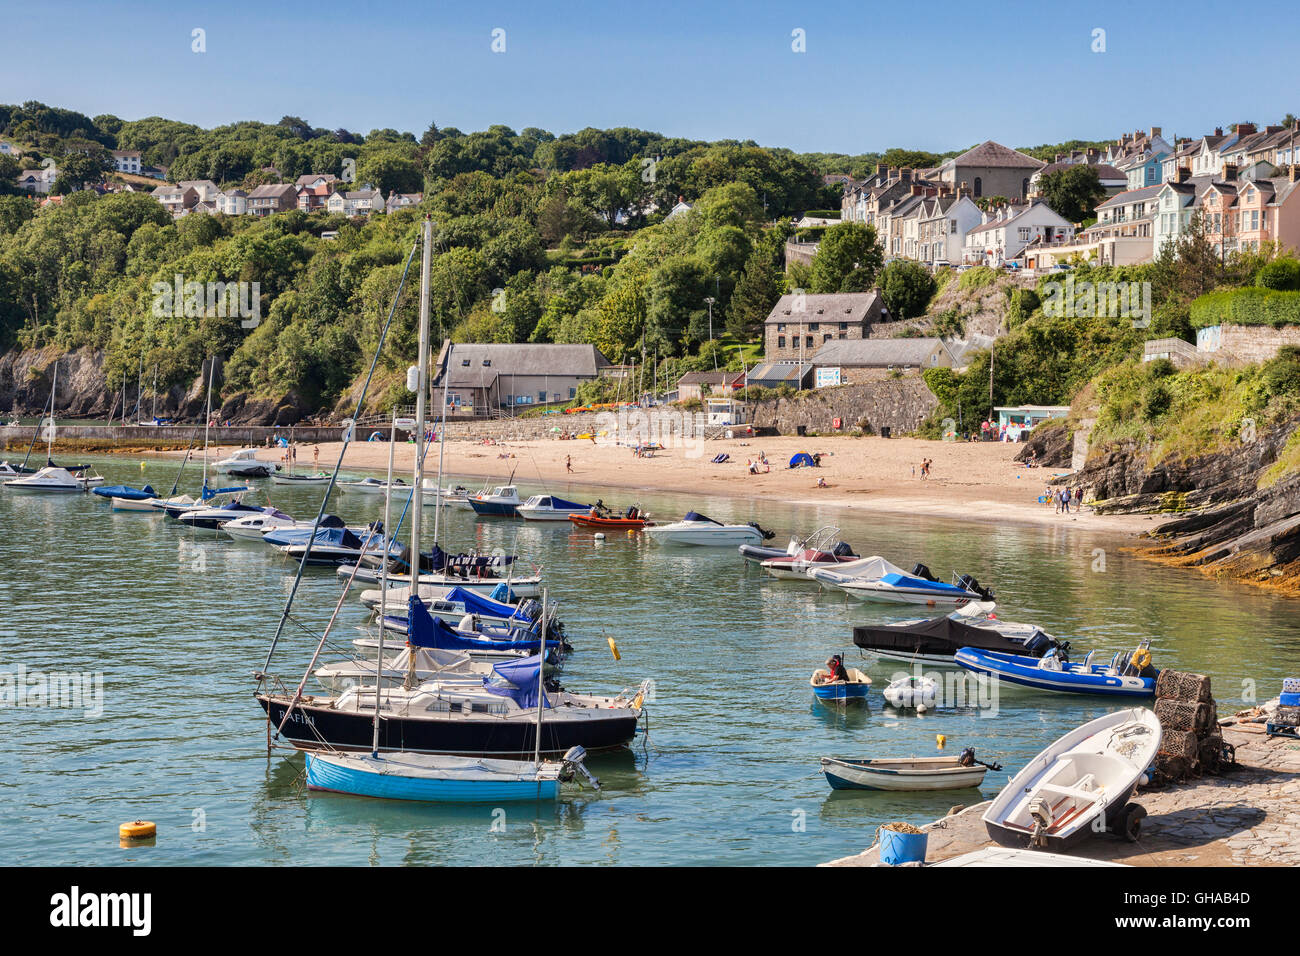 South Beach and harbour, New Quay, Ceredigion, Wales, UK - Stock Image